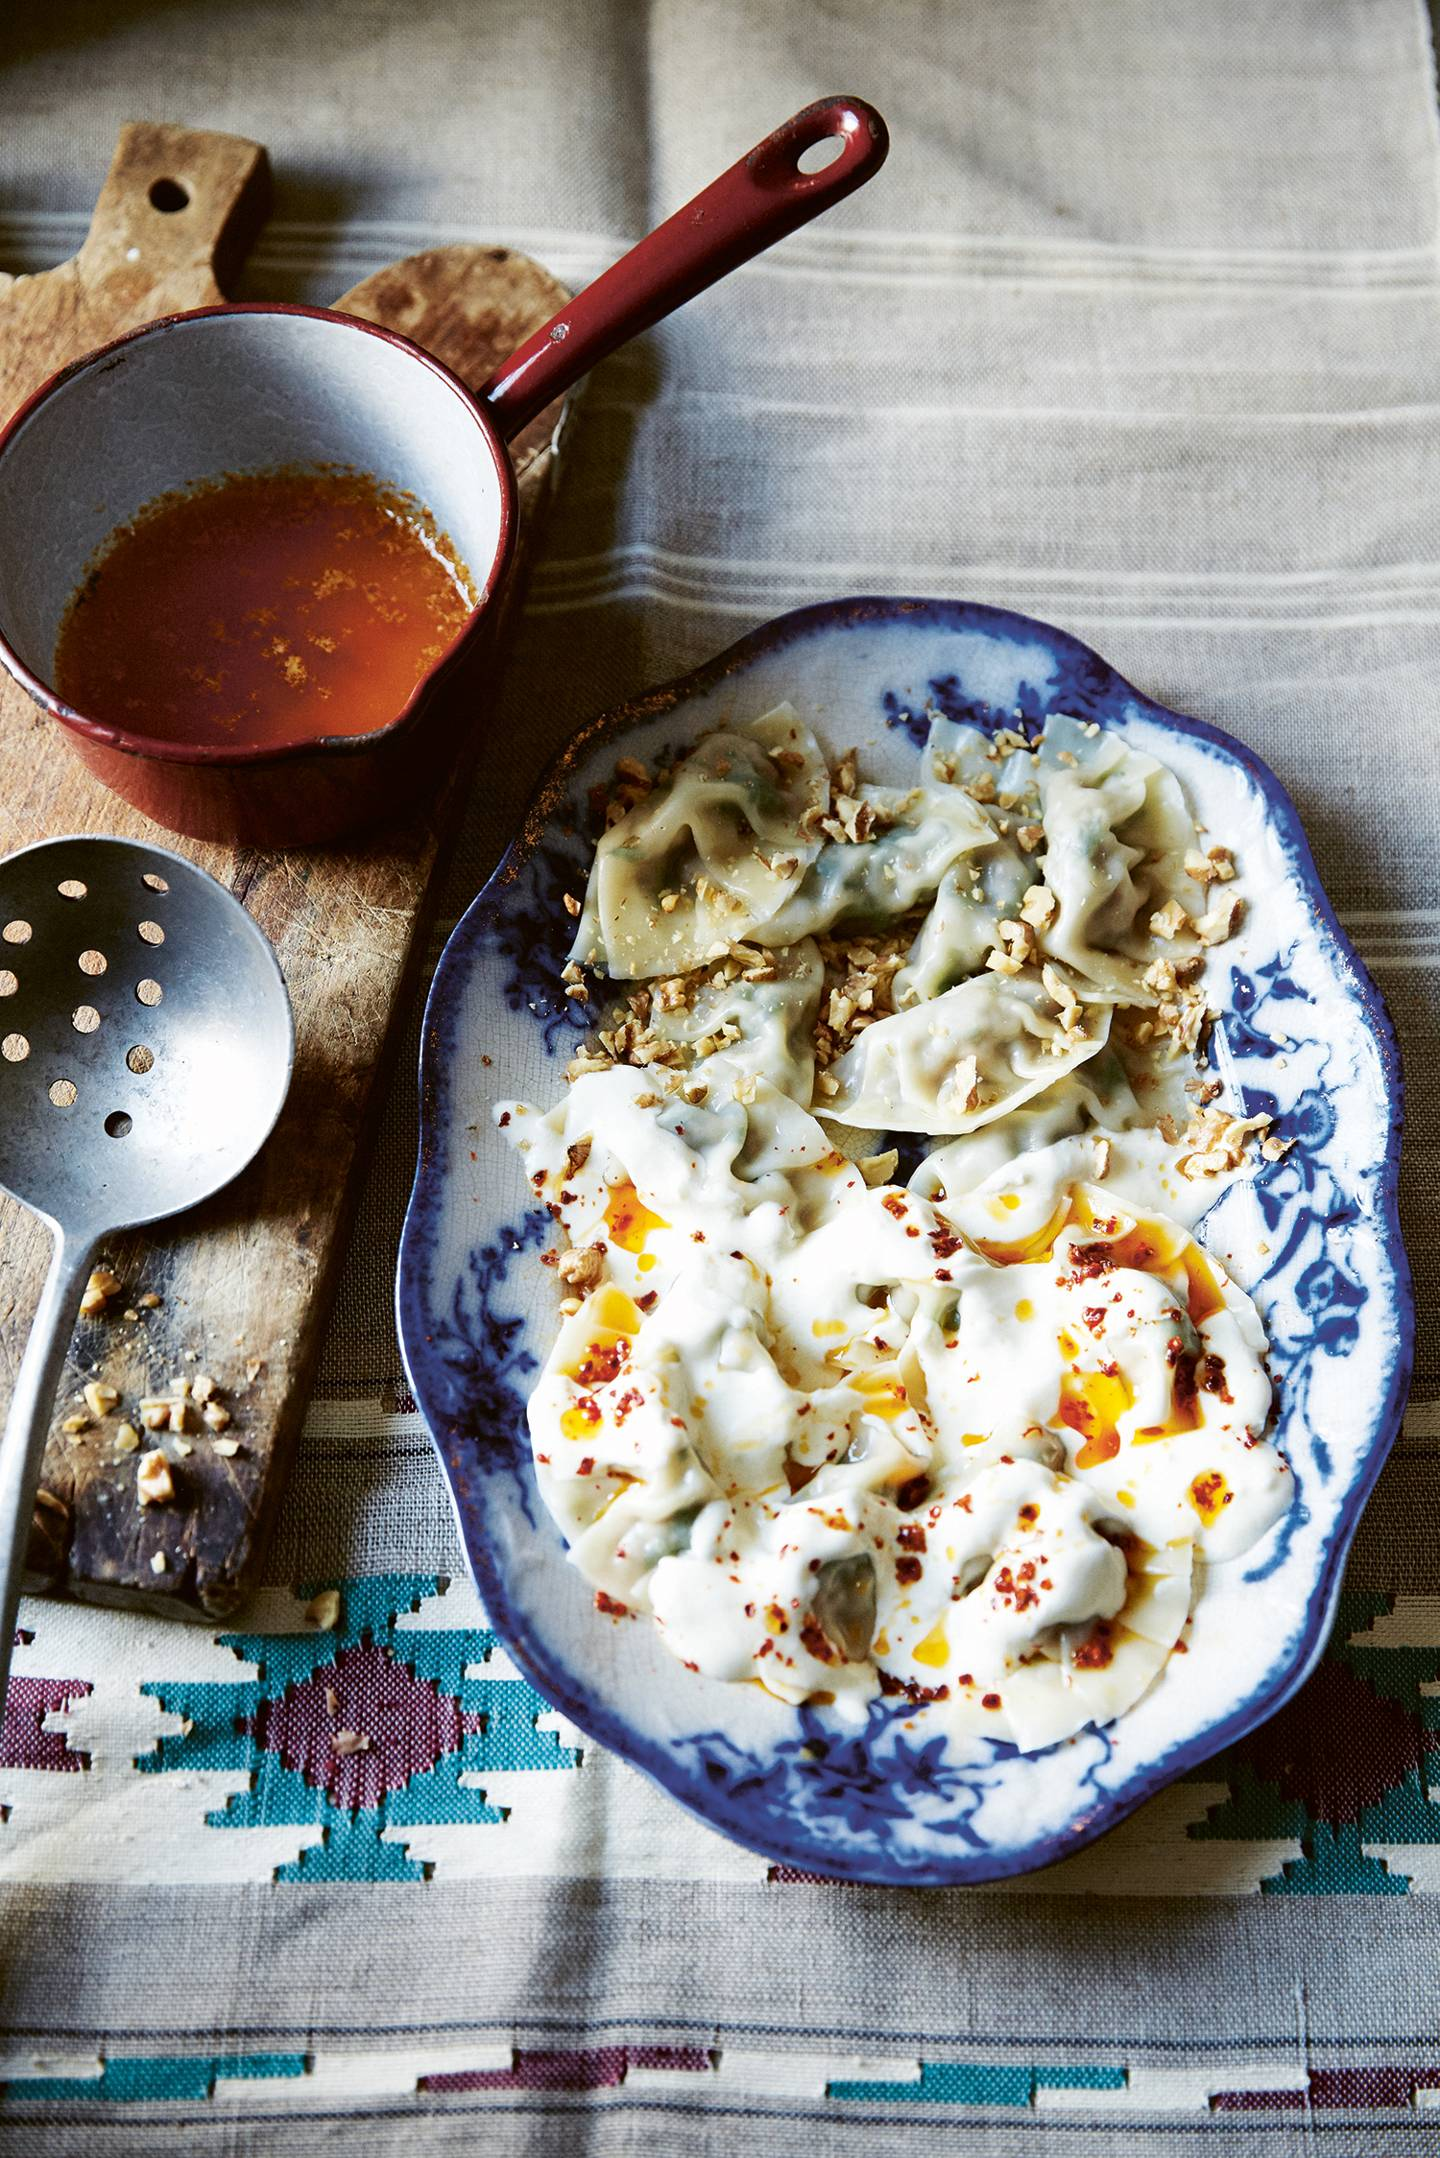 Half and half Turkish manti